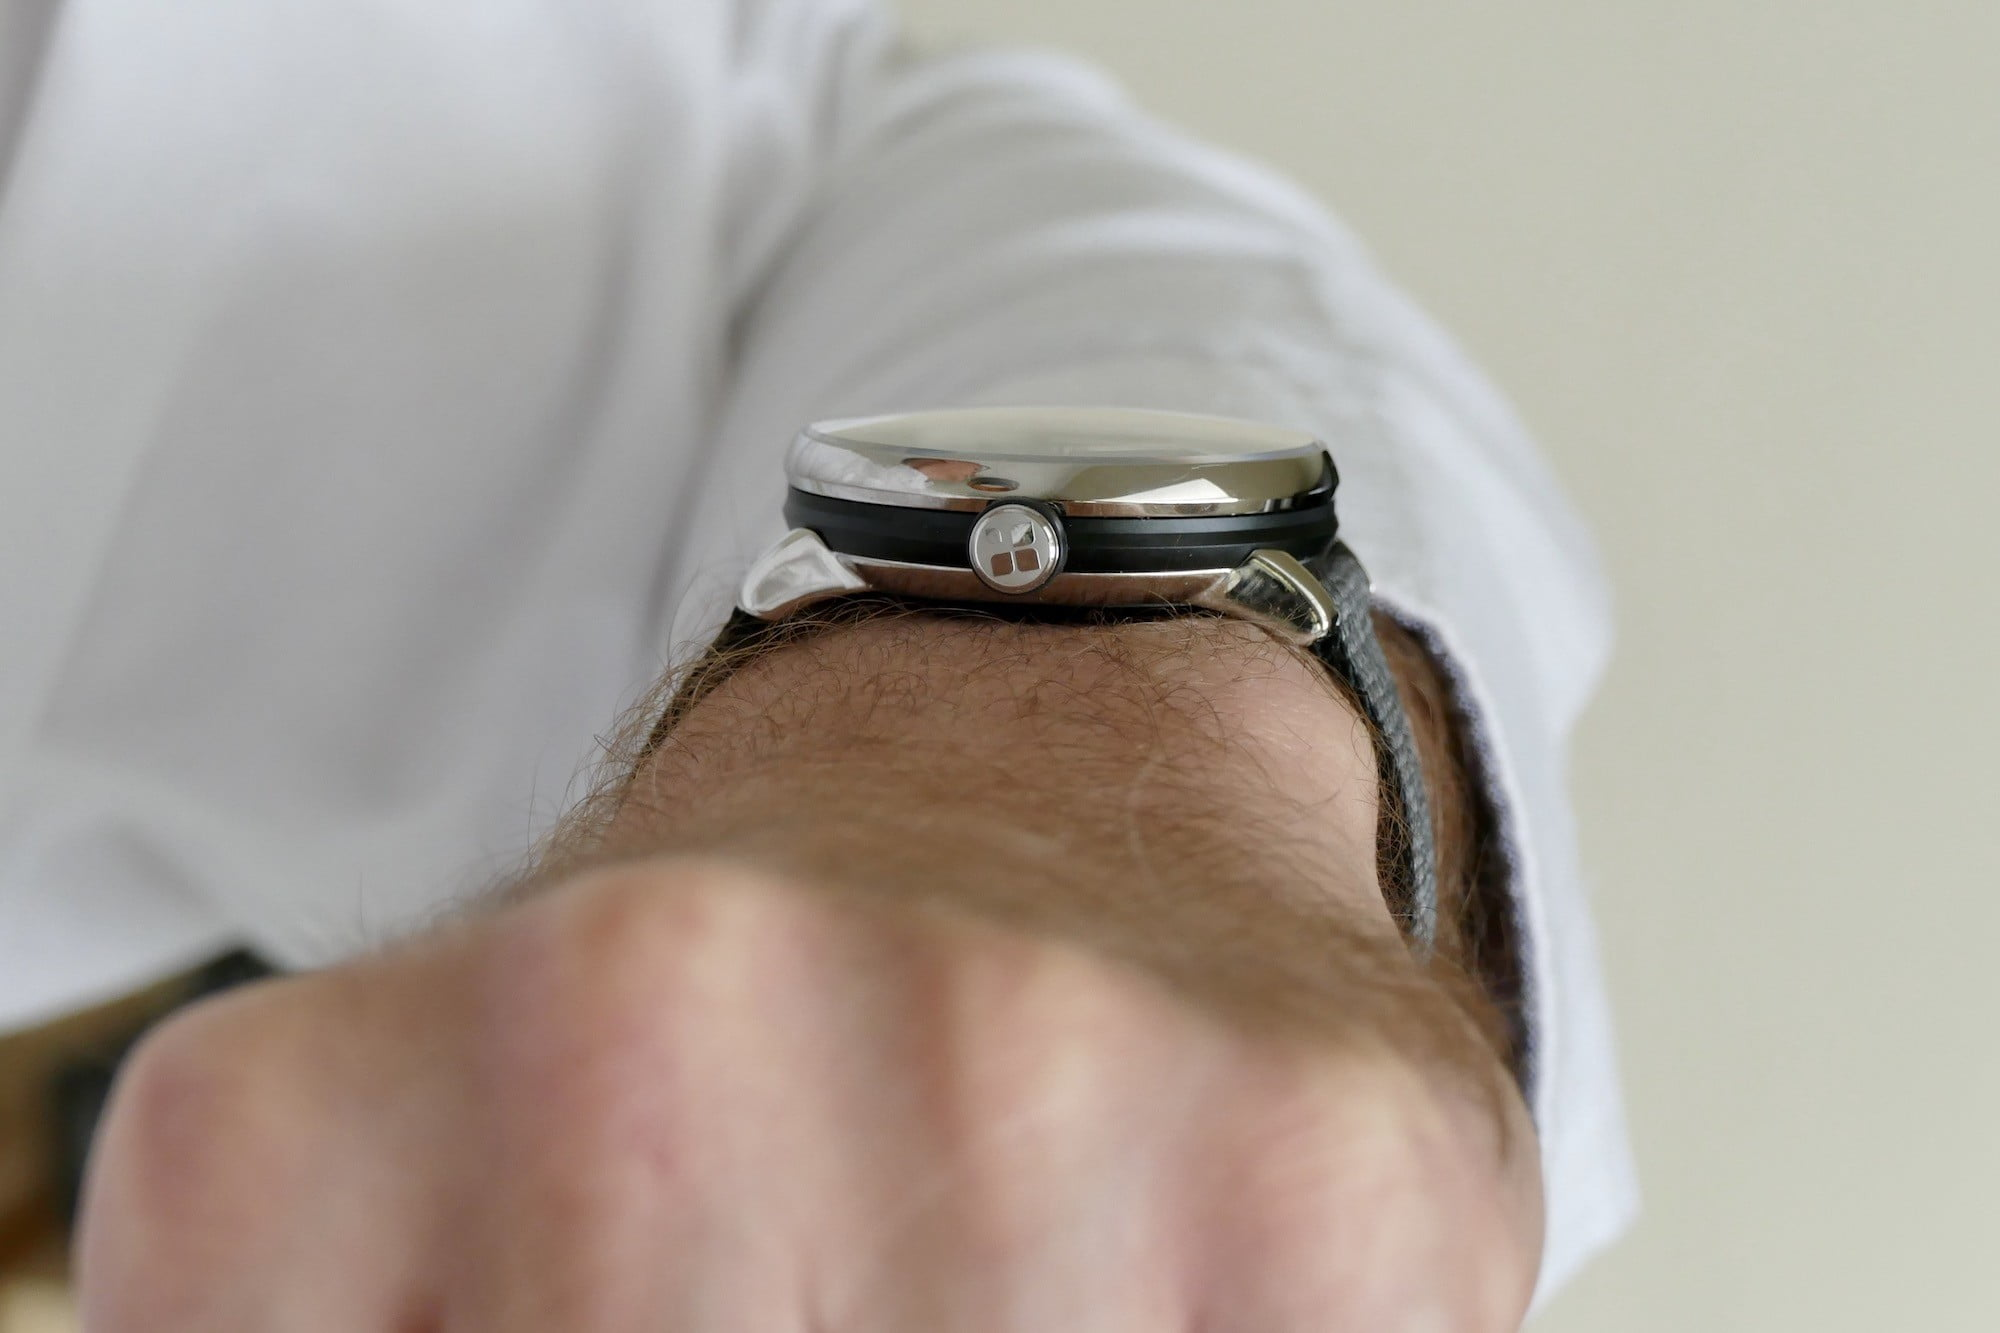 Sequent SuperCharger watch on the wrist showing the crown.